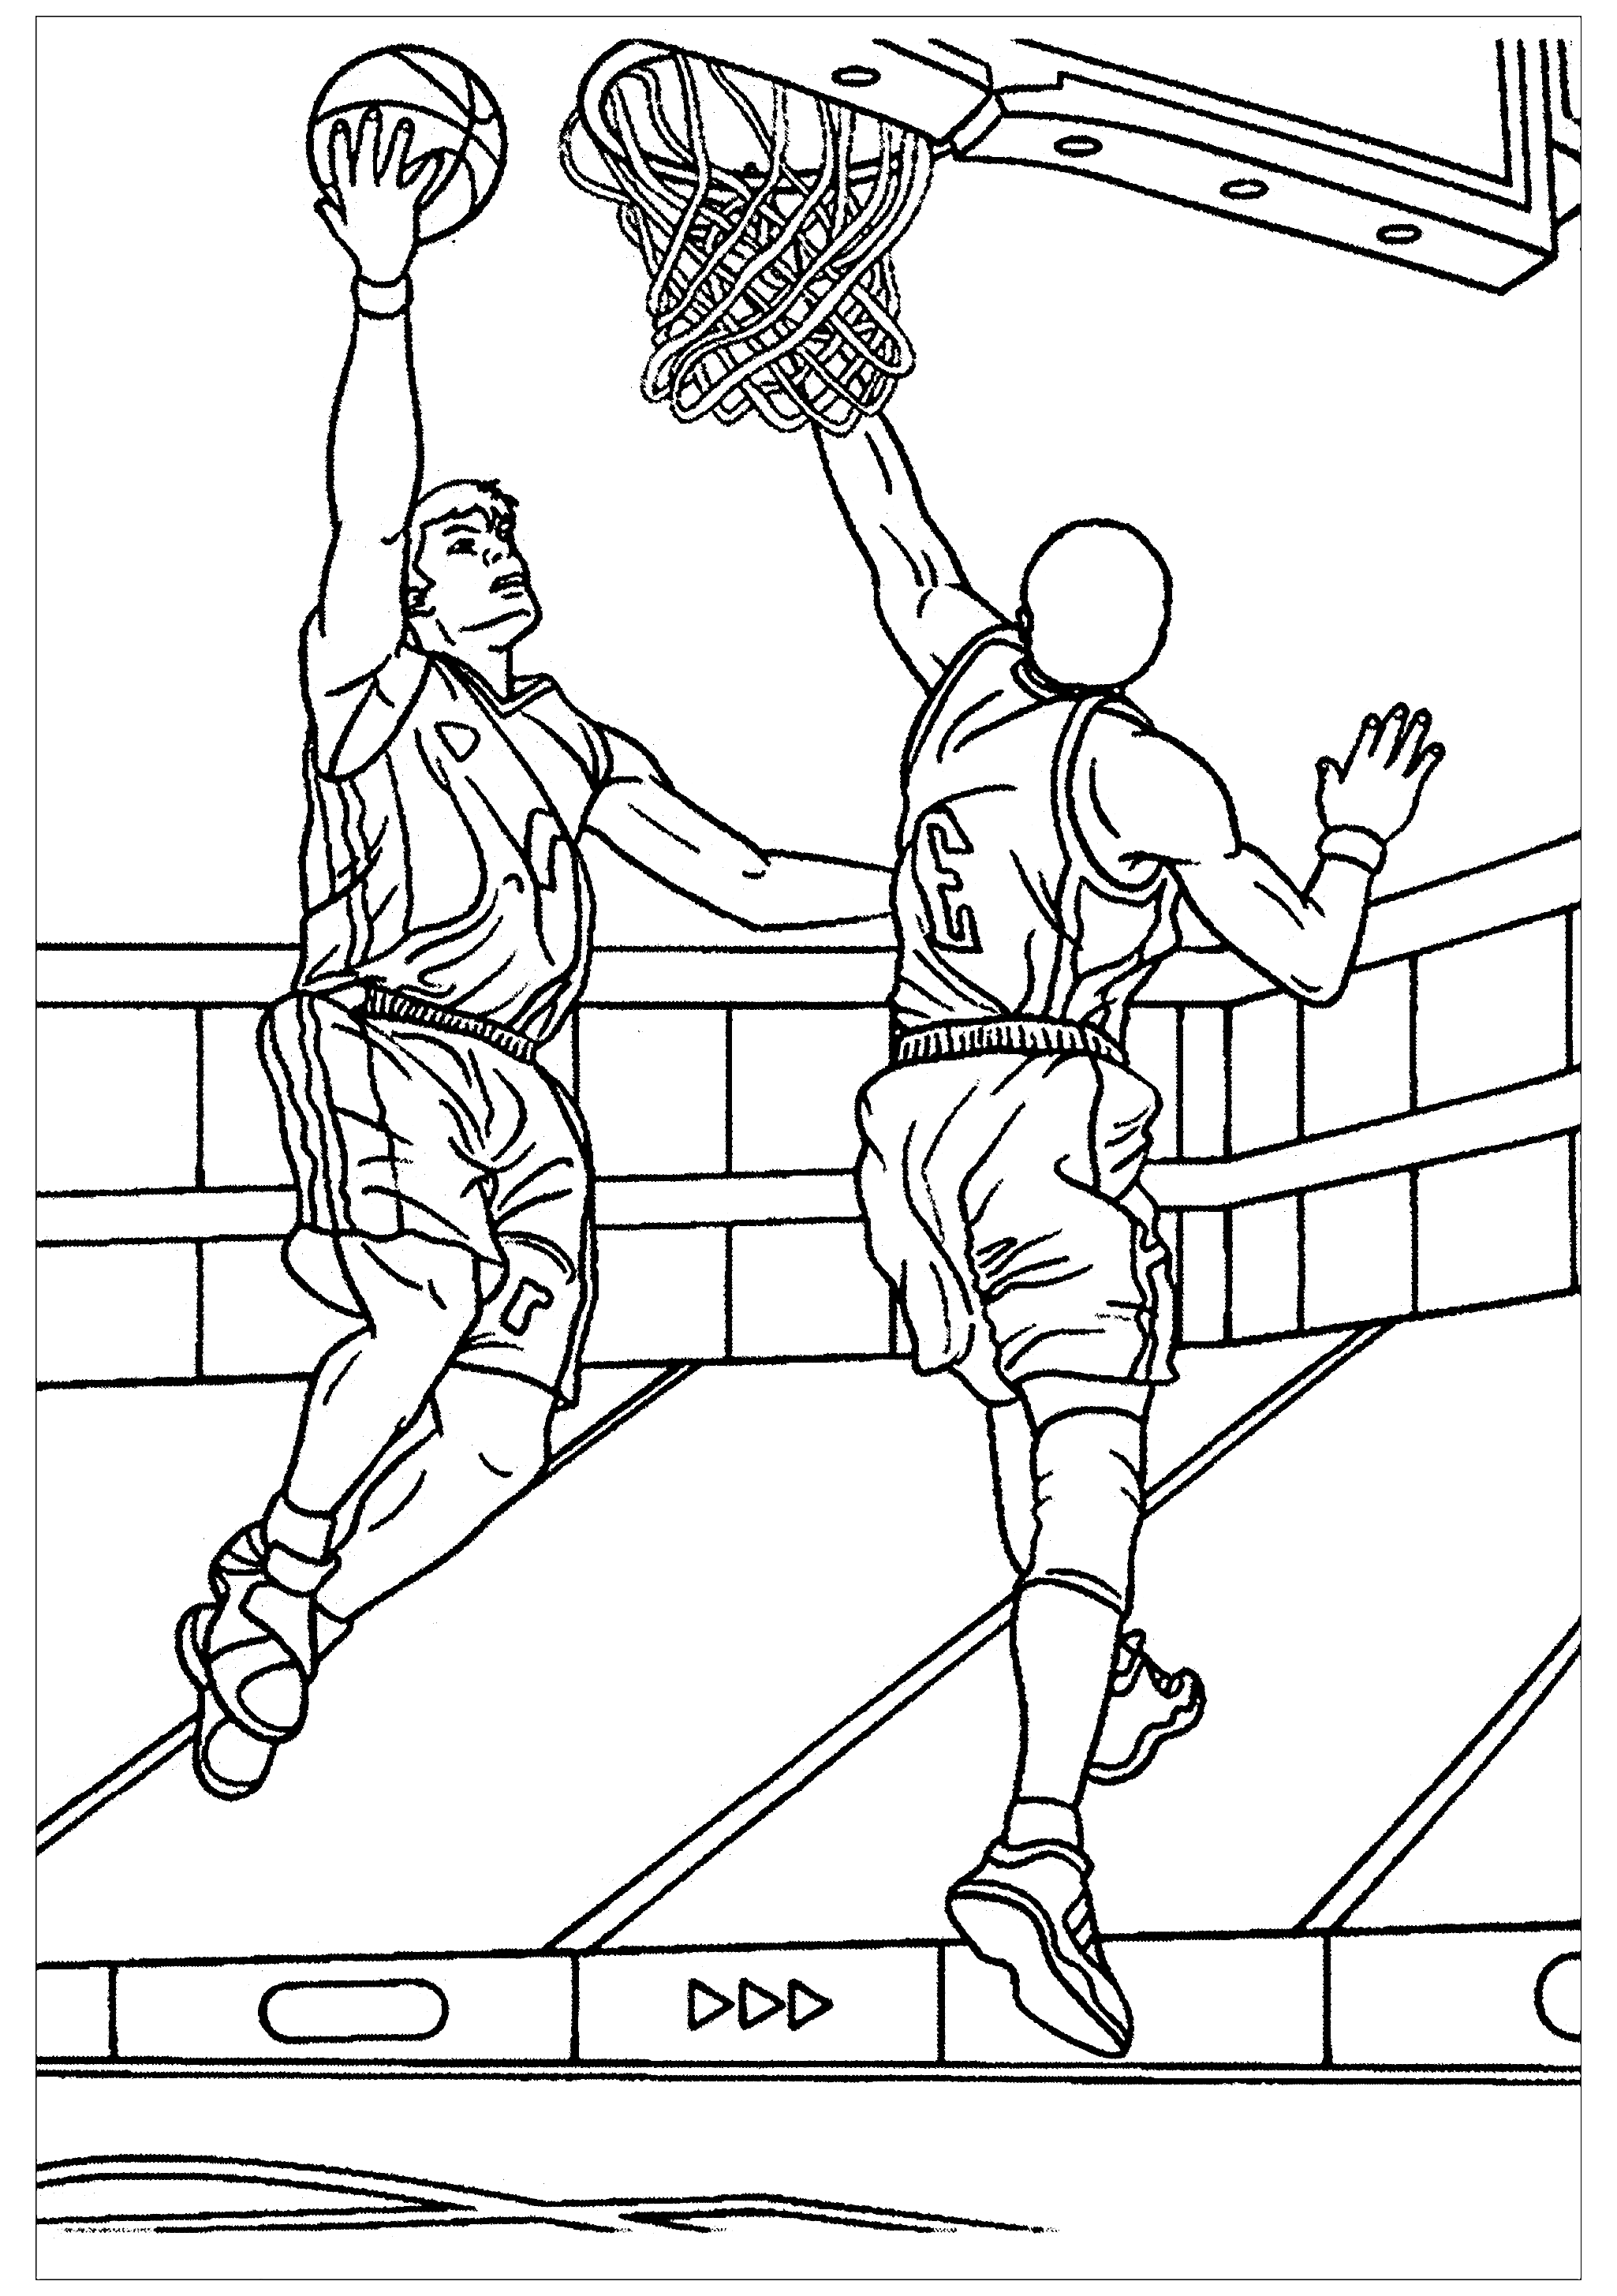 basketball pictures to color basketball coloring pages for adults coloring home basketball color pictures to